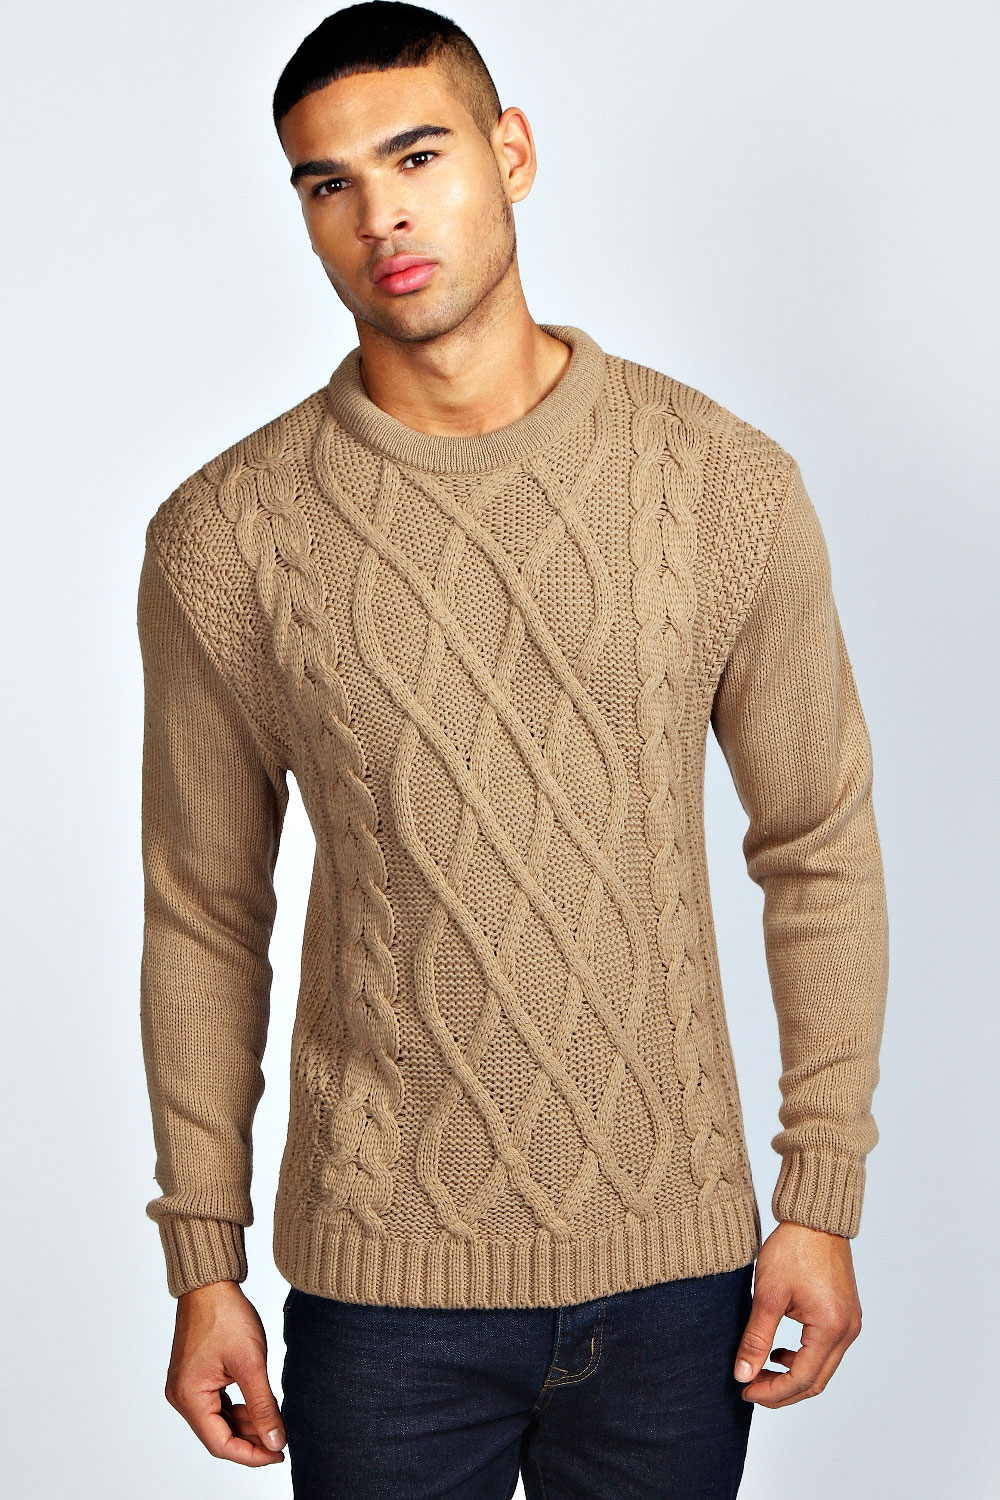 Boohoo-Mens-Long-Sleeve-Crew-Neck-Cable-Knit-Jumper